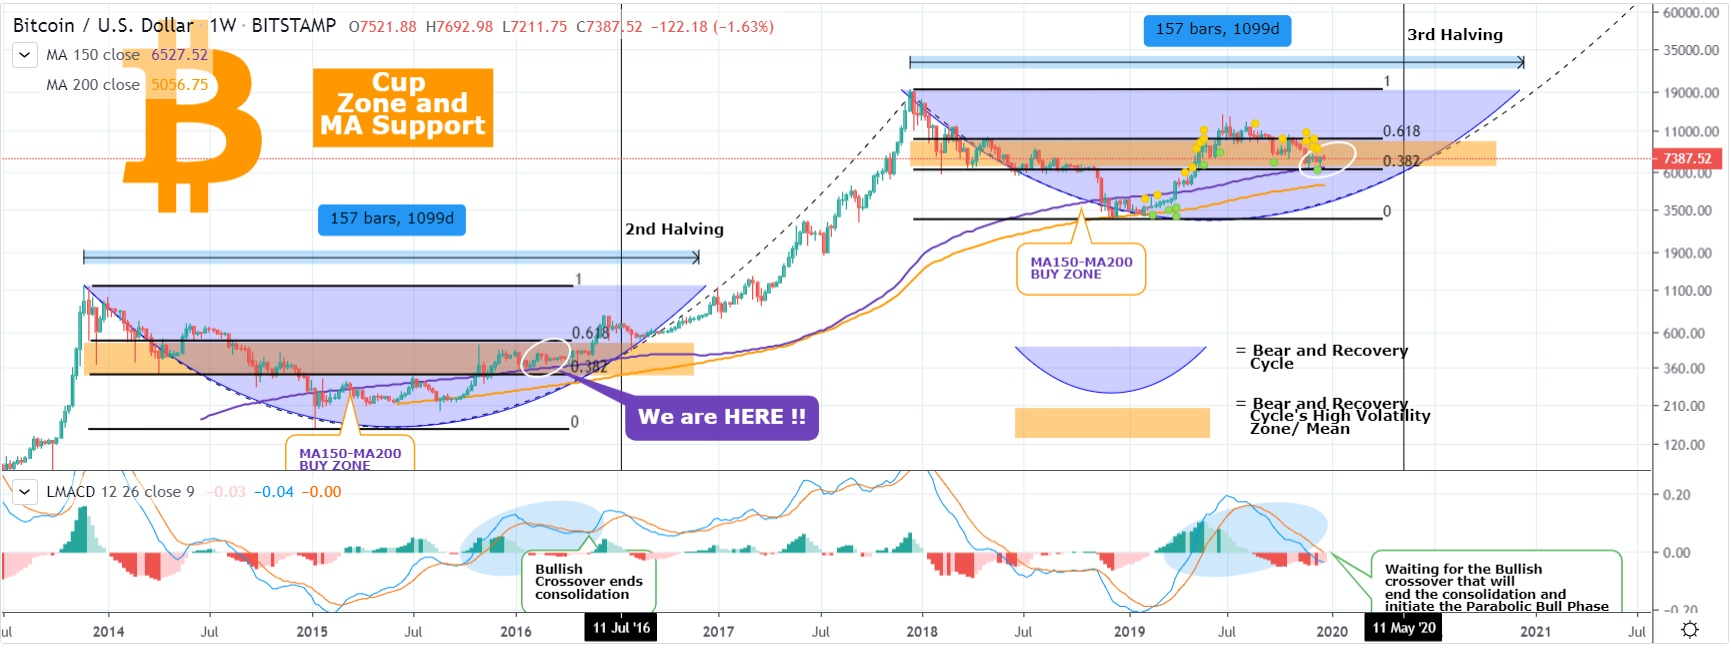 BTC price chart from TradingView